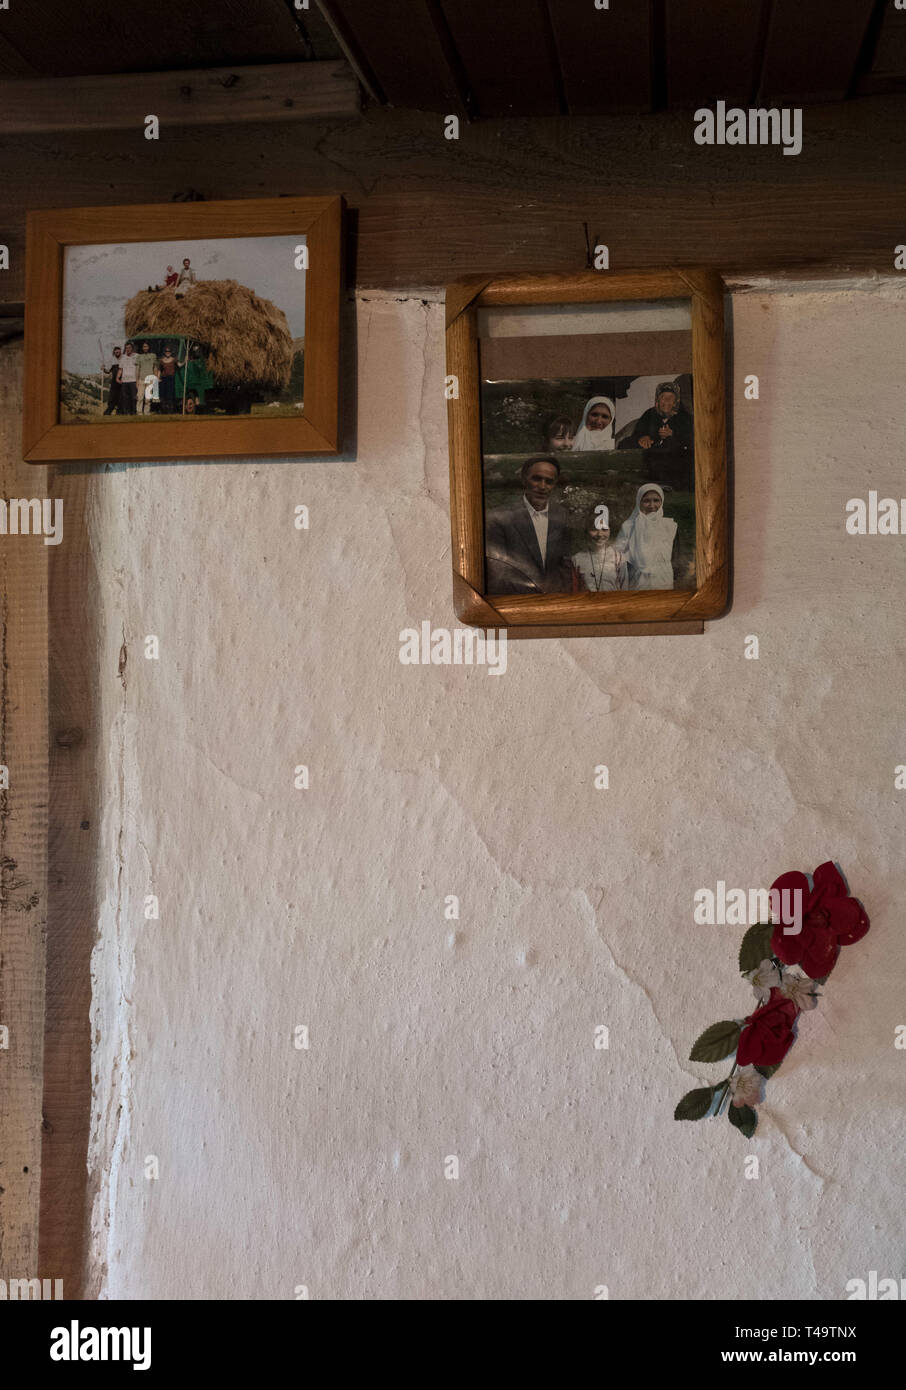 Lukomir, Bosnia. 9th July, 2018. Photos of a man's family hang on the wall. They have all left the village. In the mountains above Sarajevo at about 1500 meters lies Lukomir, the most remote village in all of Bosnia. The village consists mainly of nomadic sheep herder, adn a population of abotu 20 people. Being deemed unstrategic by the Serbs, Lukomir is one of the only areas that remained untouched during the war of the 1990's. The population of the village is slowly disappearing. With children leaving to attend school elsewhere and not coming back, what is the future of this village? Af - Stock Image